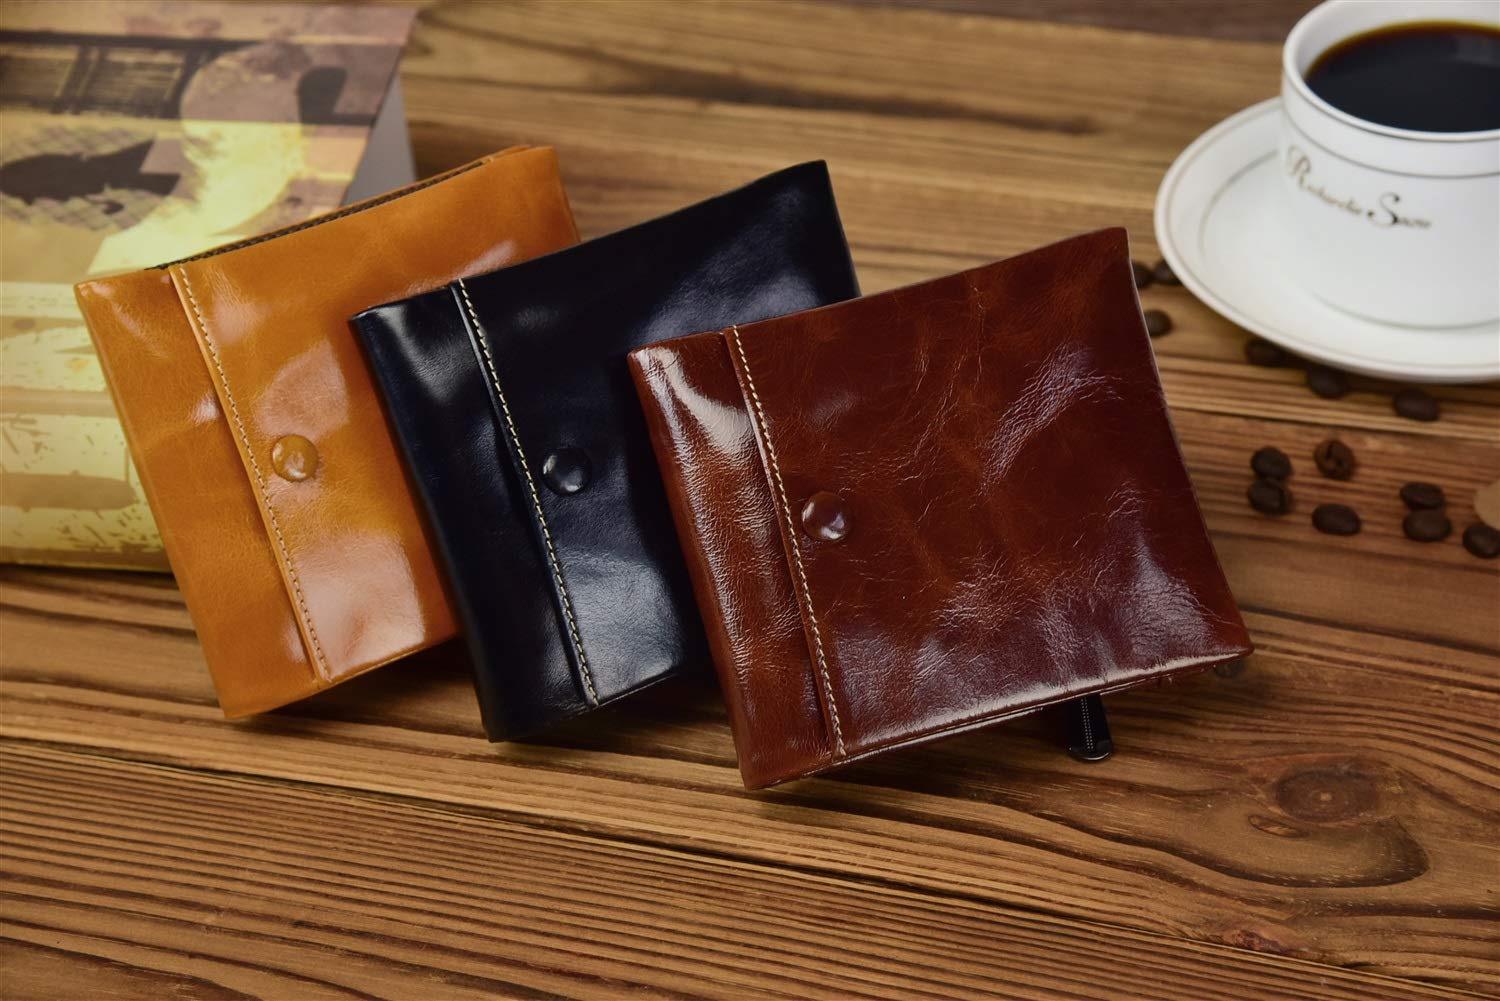 Multi Card Extra Capacity Travel Wallet CEFULTY ID Window Wallet for Men Color : Black Sleek and Stylish Gift for Men Bifold Top Flip Wallet